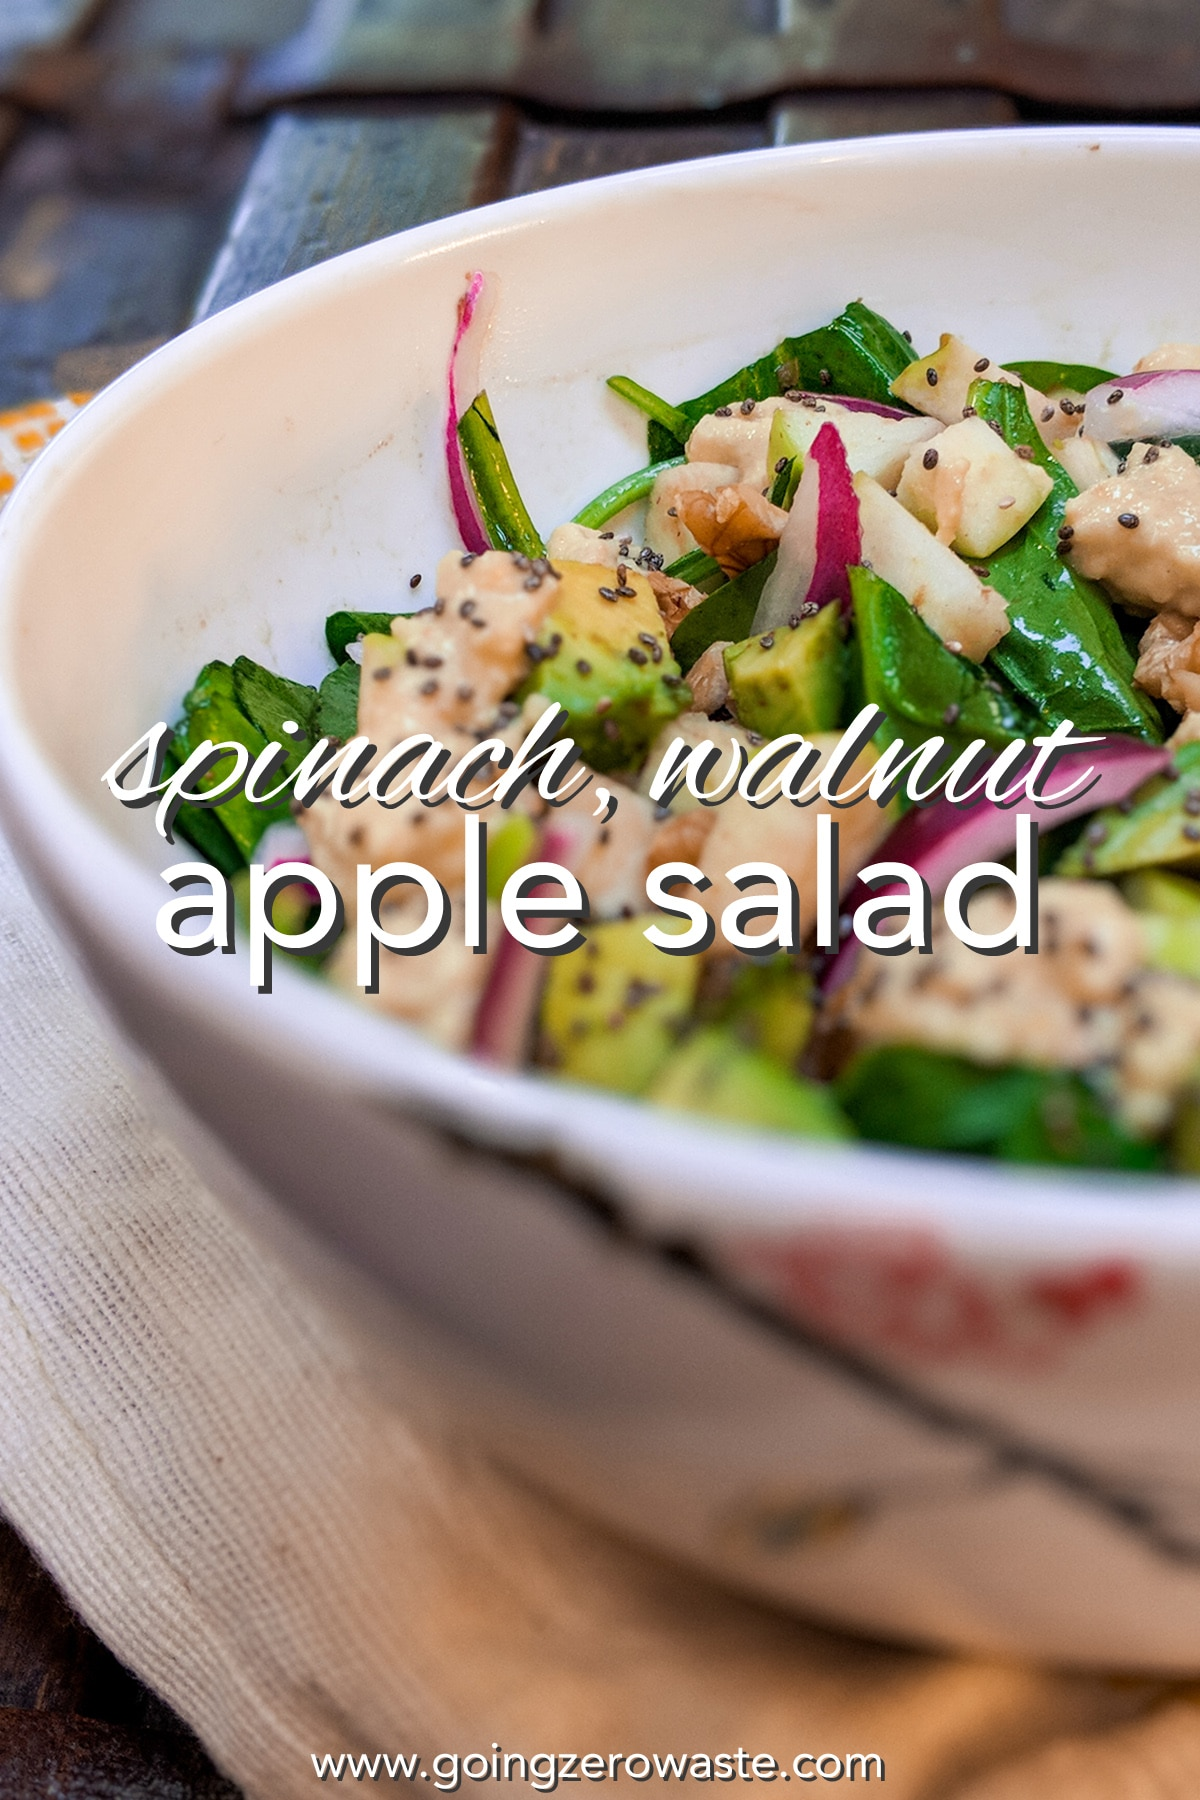 Spinach, Walnut, Apple Salad